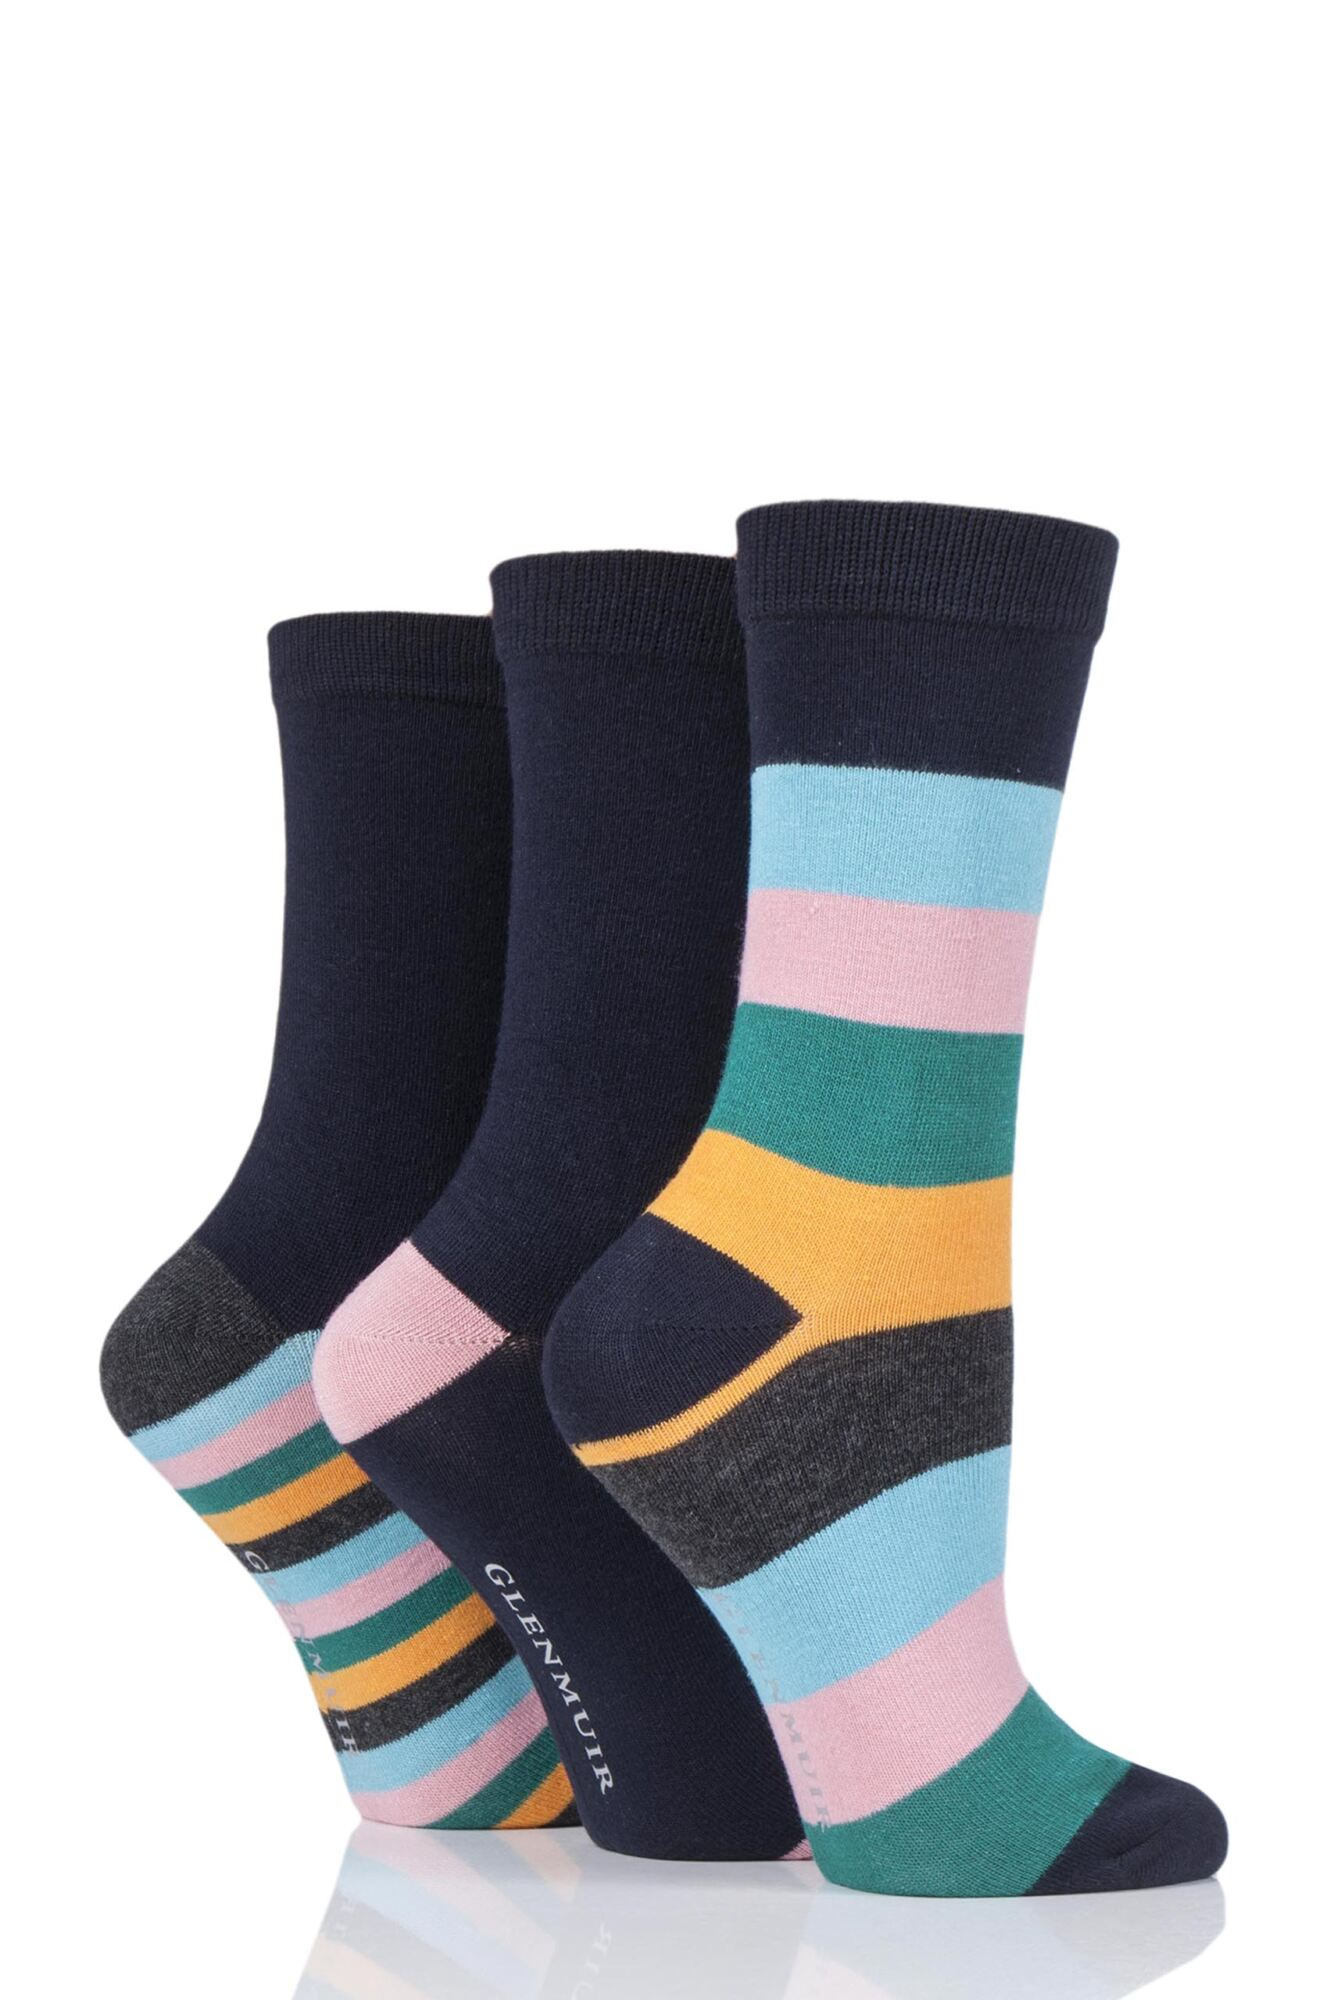 3 Pair Mixed Stripe Bamboo Socks Ladies - Glenmuir